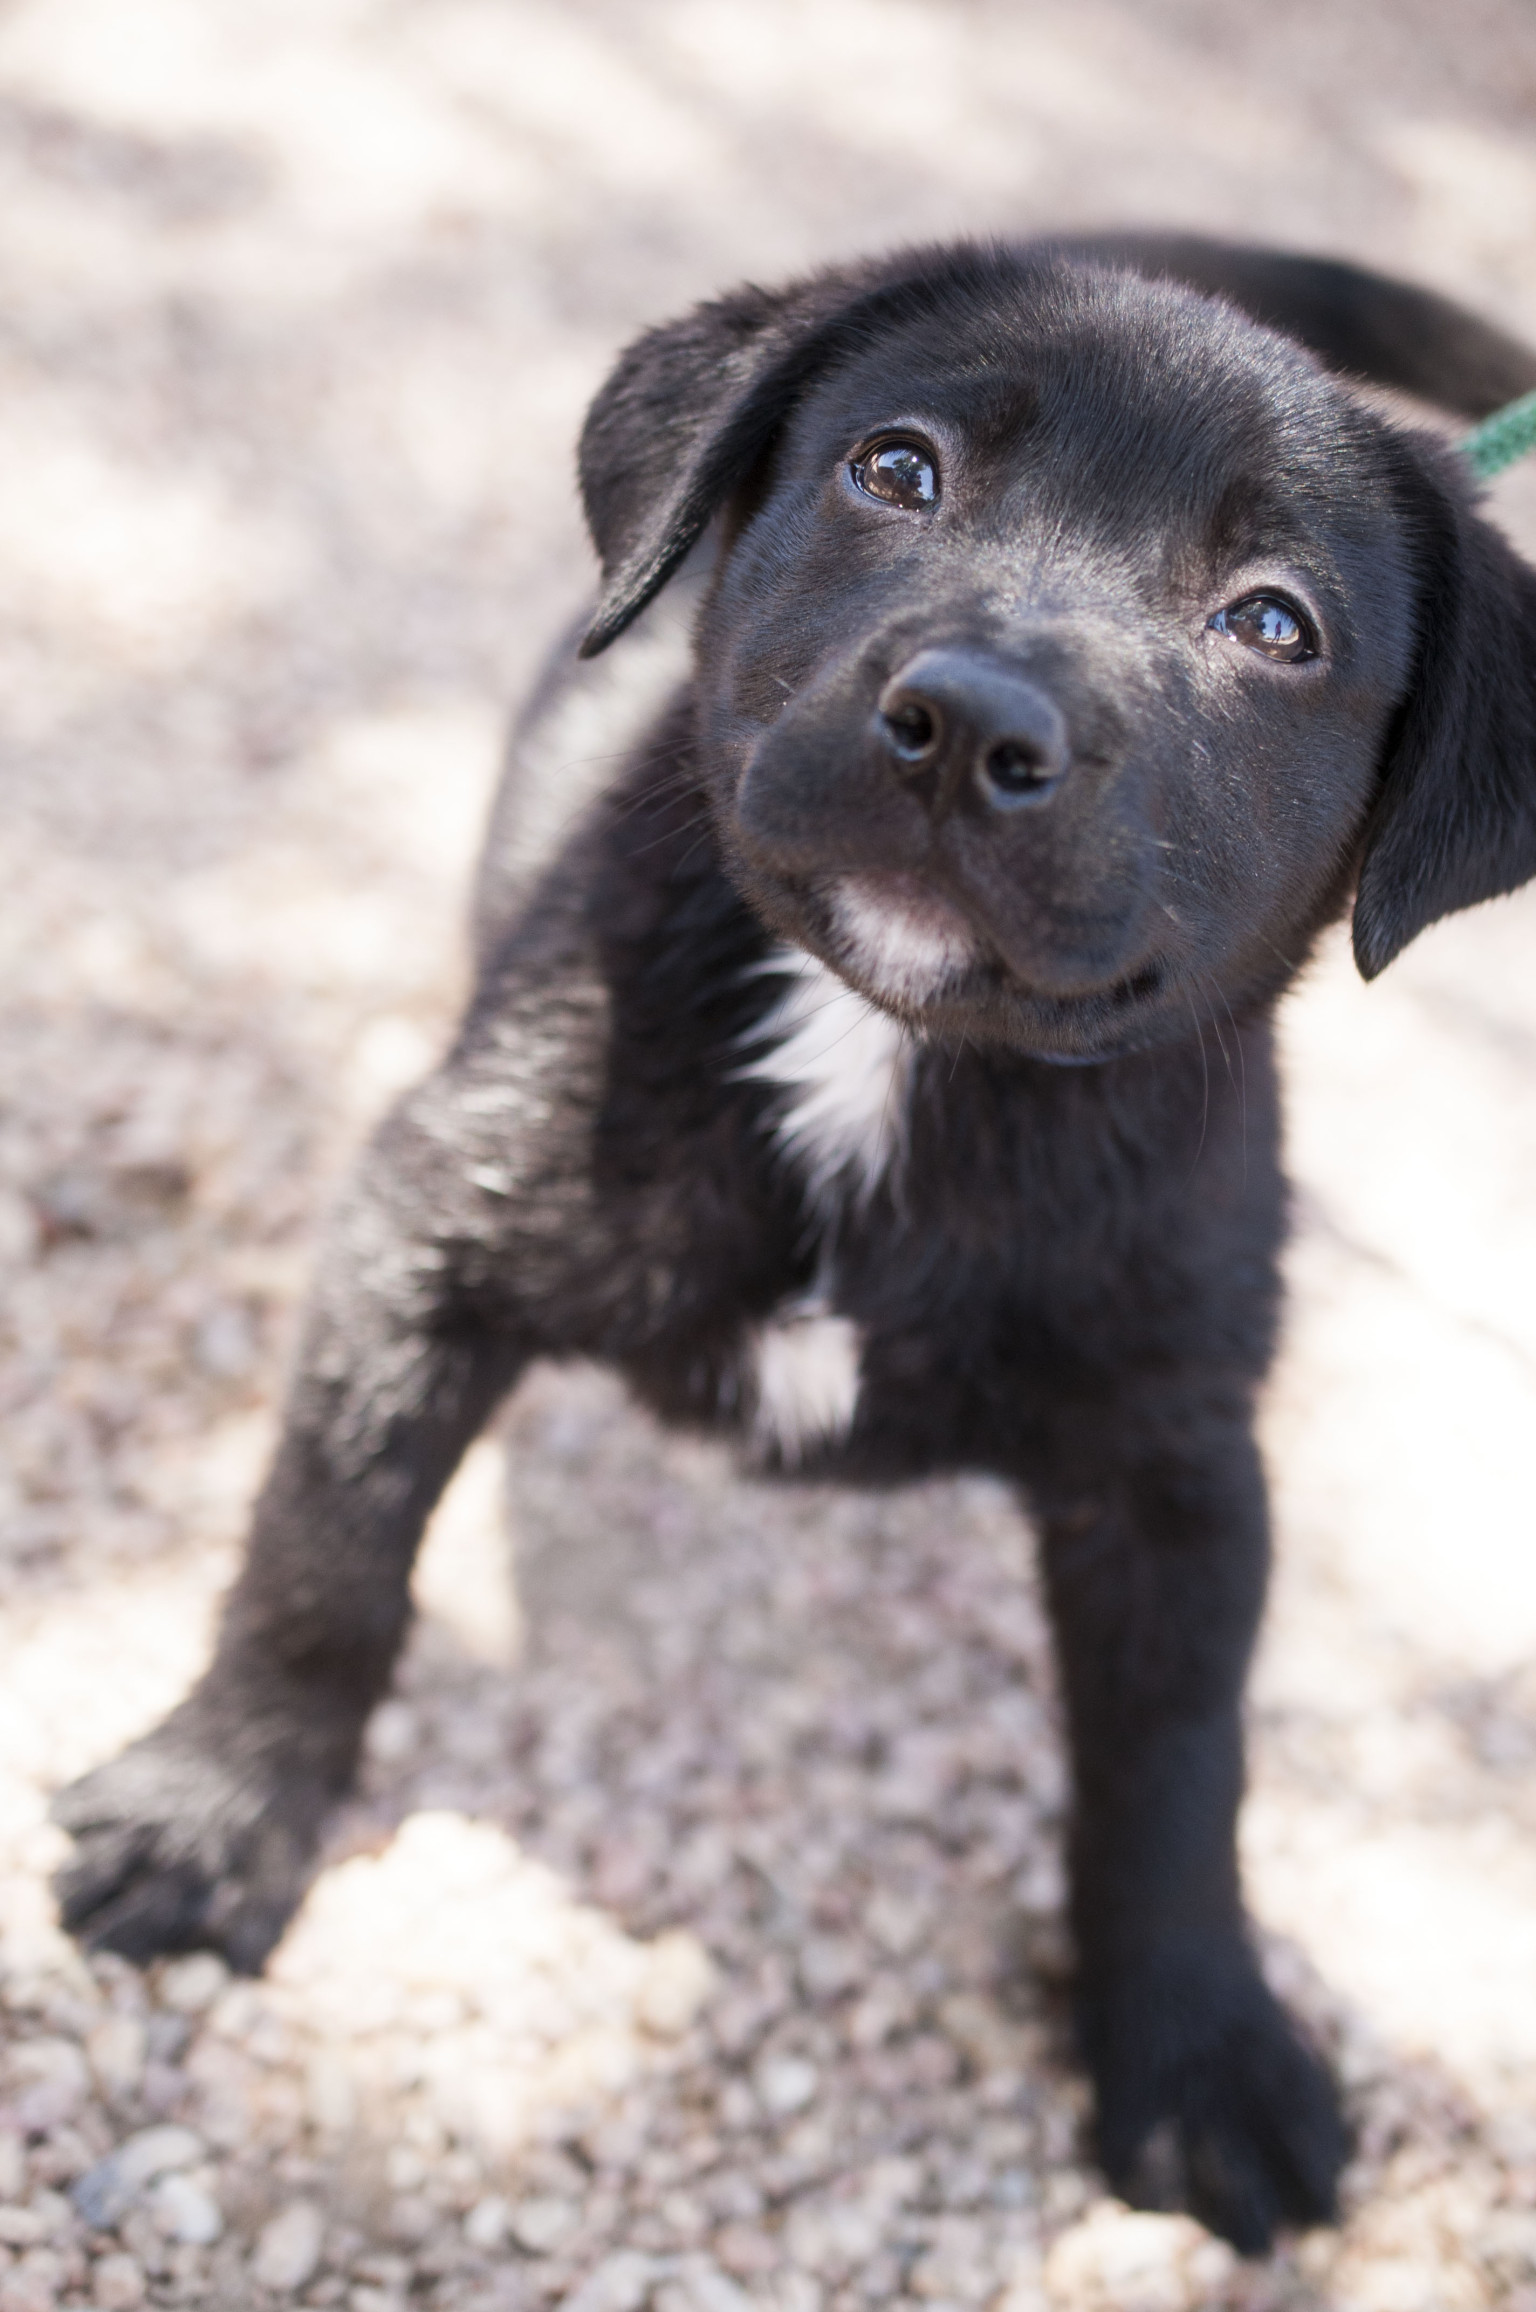 Adoptable Puppies This Week From Lifeline Puppy Rescue